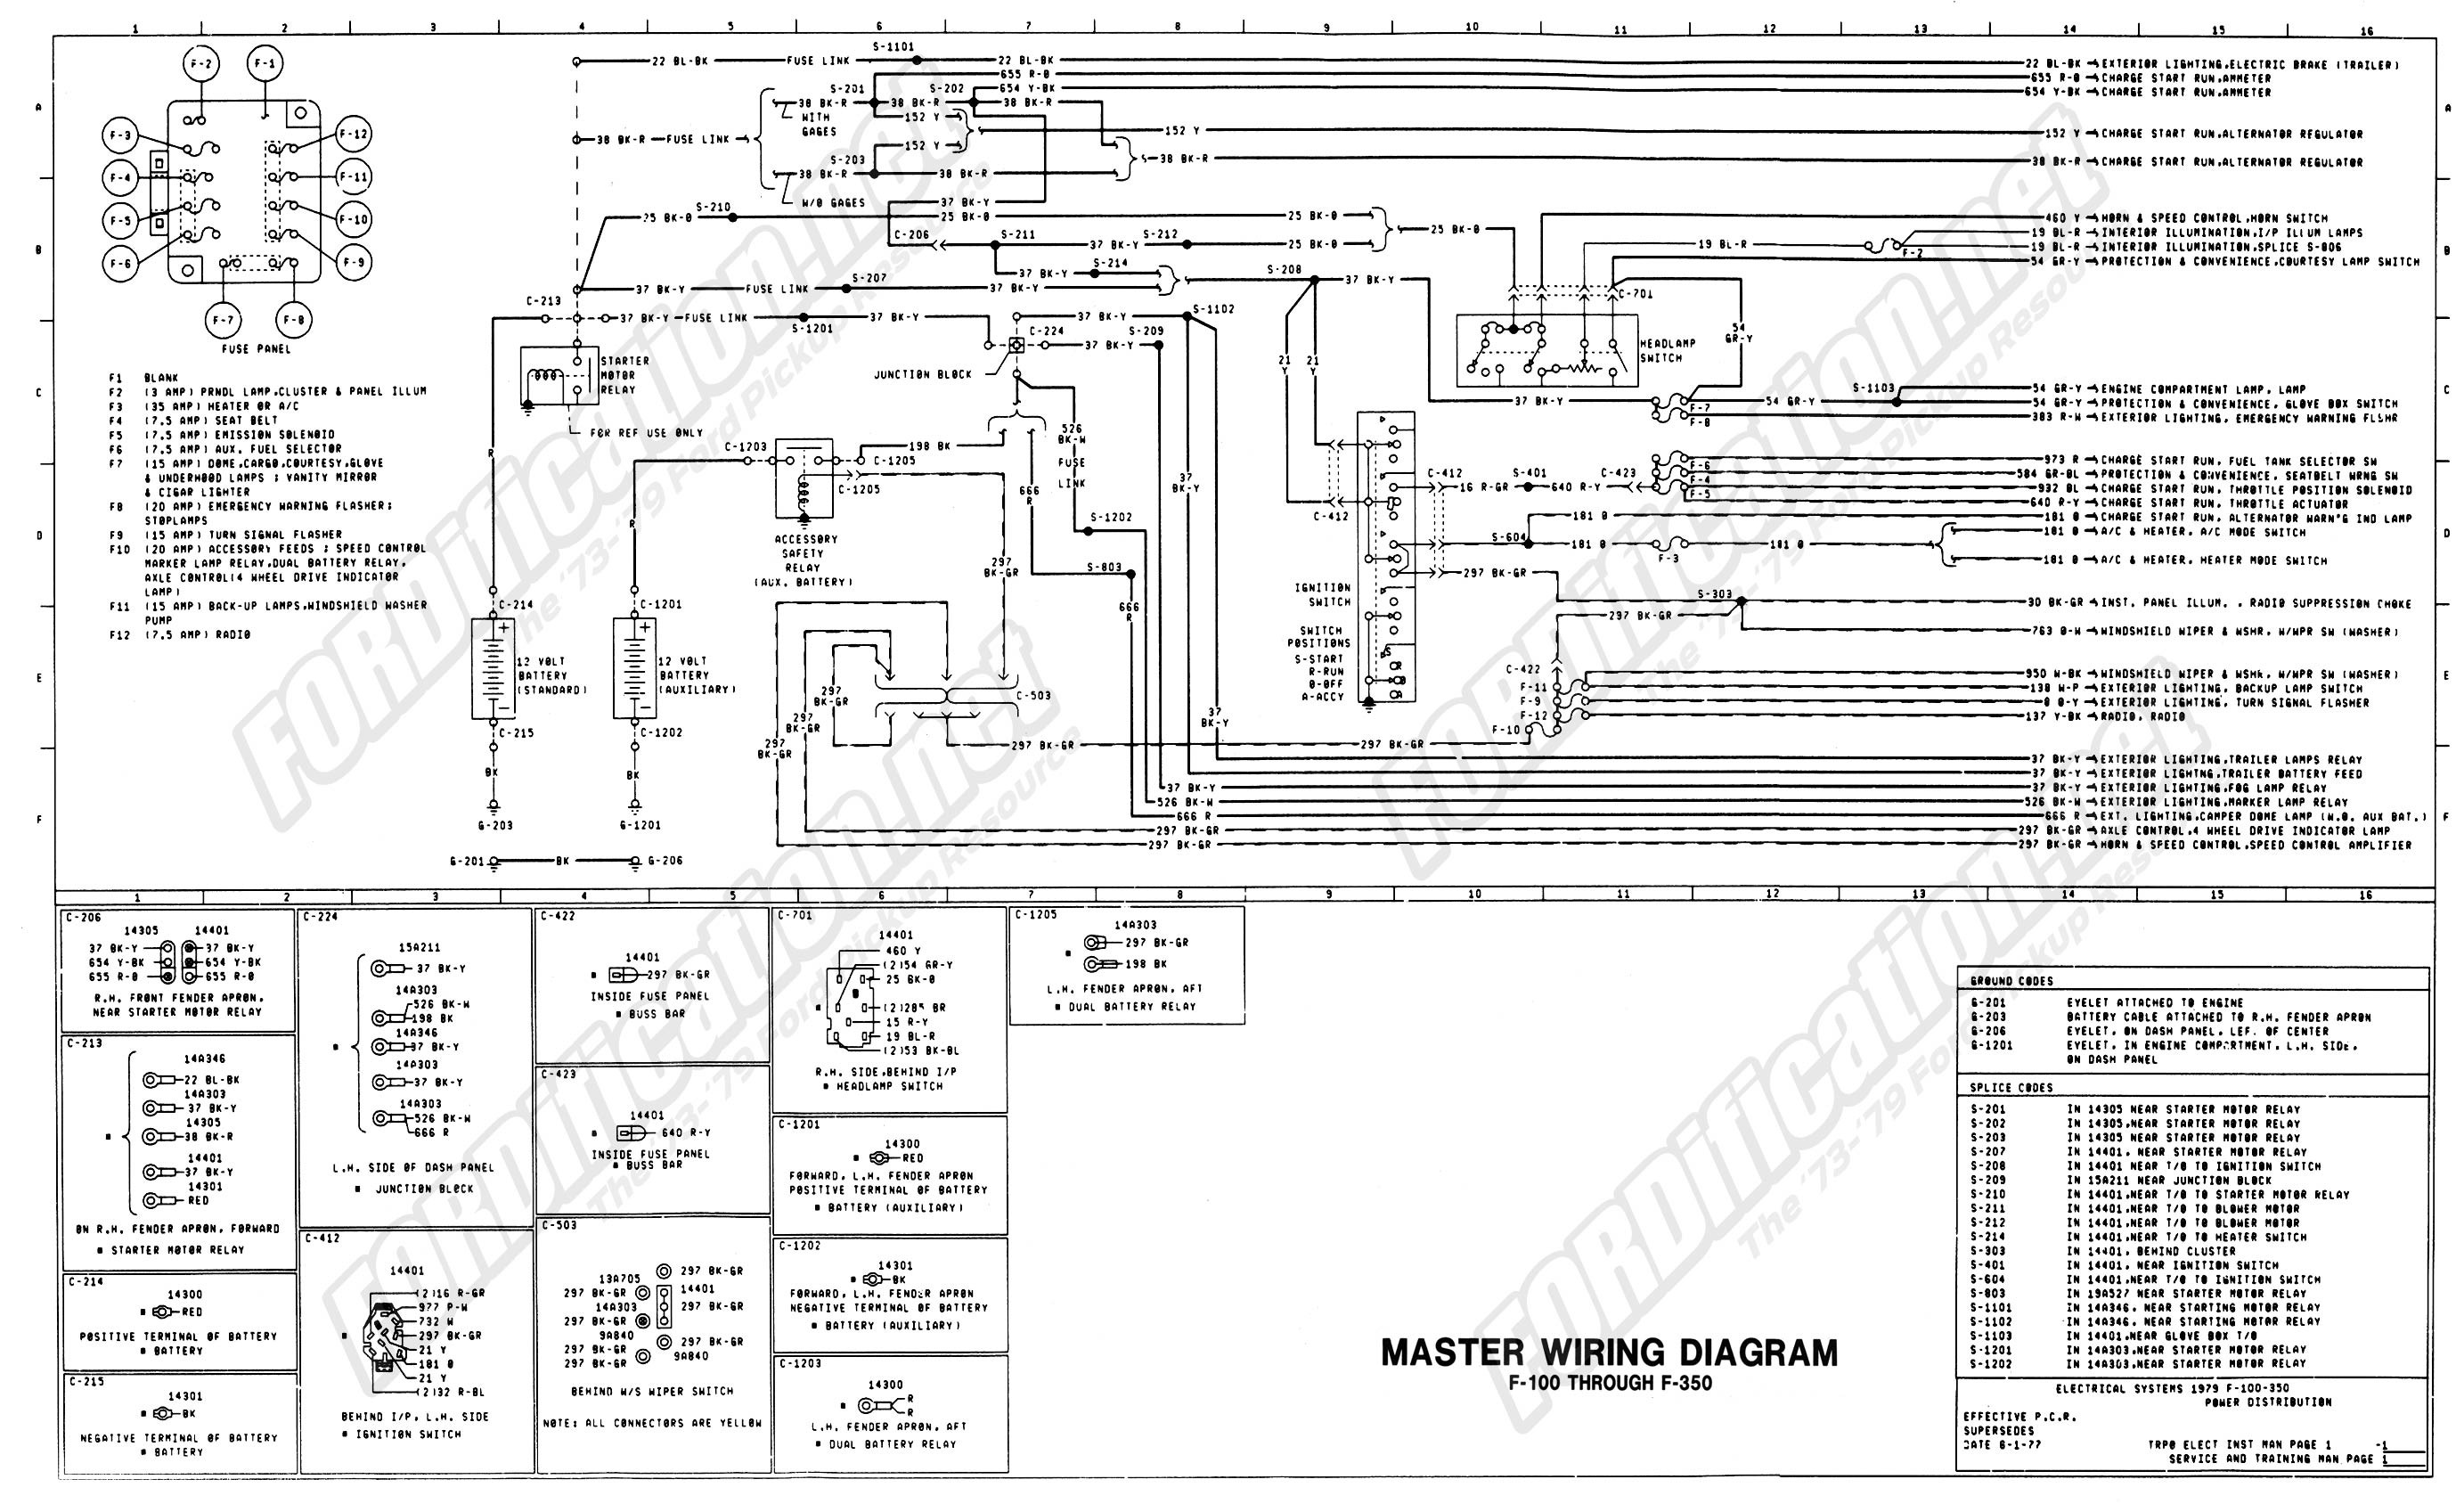 2010 ford F150 Wiring Diagram F150 Wiring Harness Further 1970 ford torino Ignition Wiring Diagram Of 2010 ford F150 Wiring Diagram